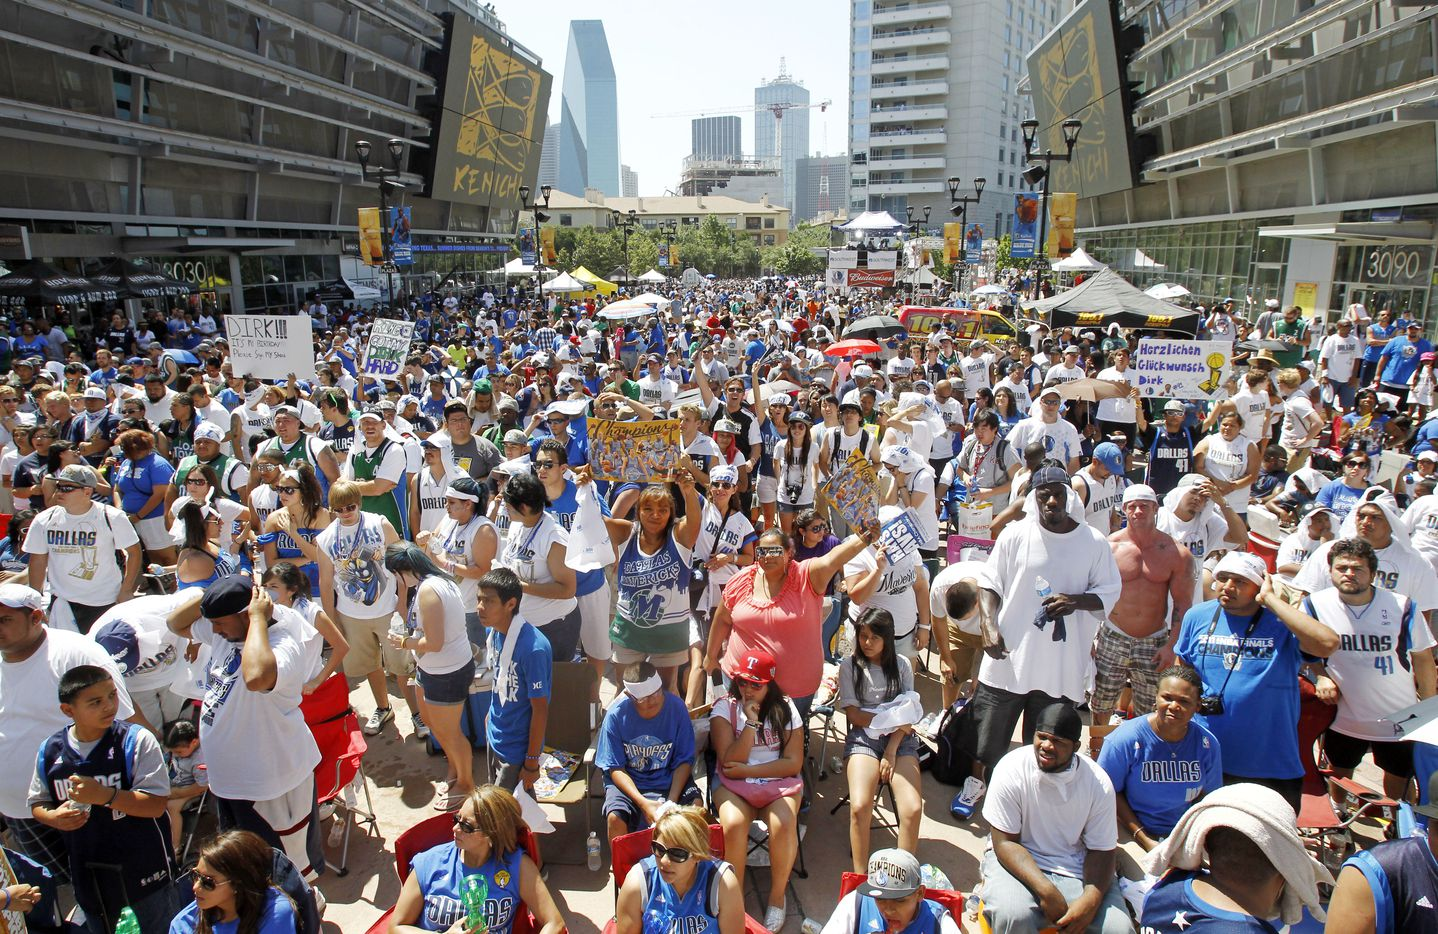 Fans on Victory Plaza wait in the morning heat for the Mavericks to arrive at the American Airlines Center during the Dallas Mavericks victory parade and celebration in Dallas on Thursday, June 16, 2011.   (Louis DeLuca/The Dallas Morning News) / mavsmavsmavs /